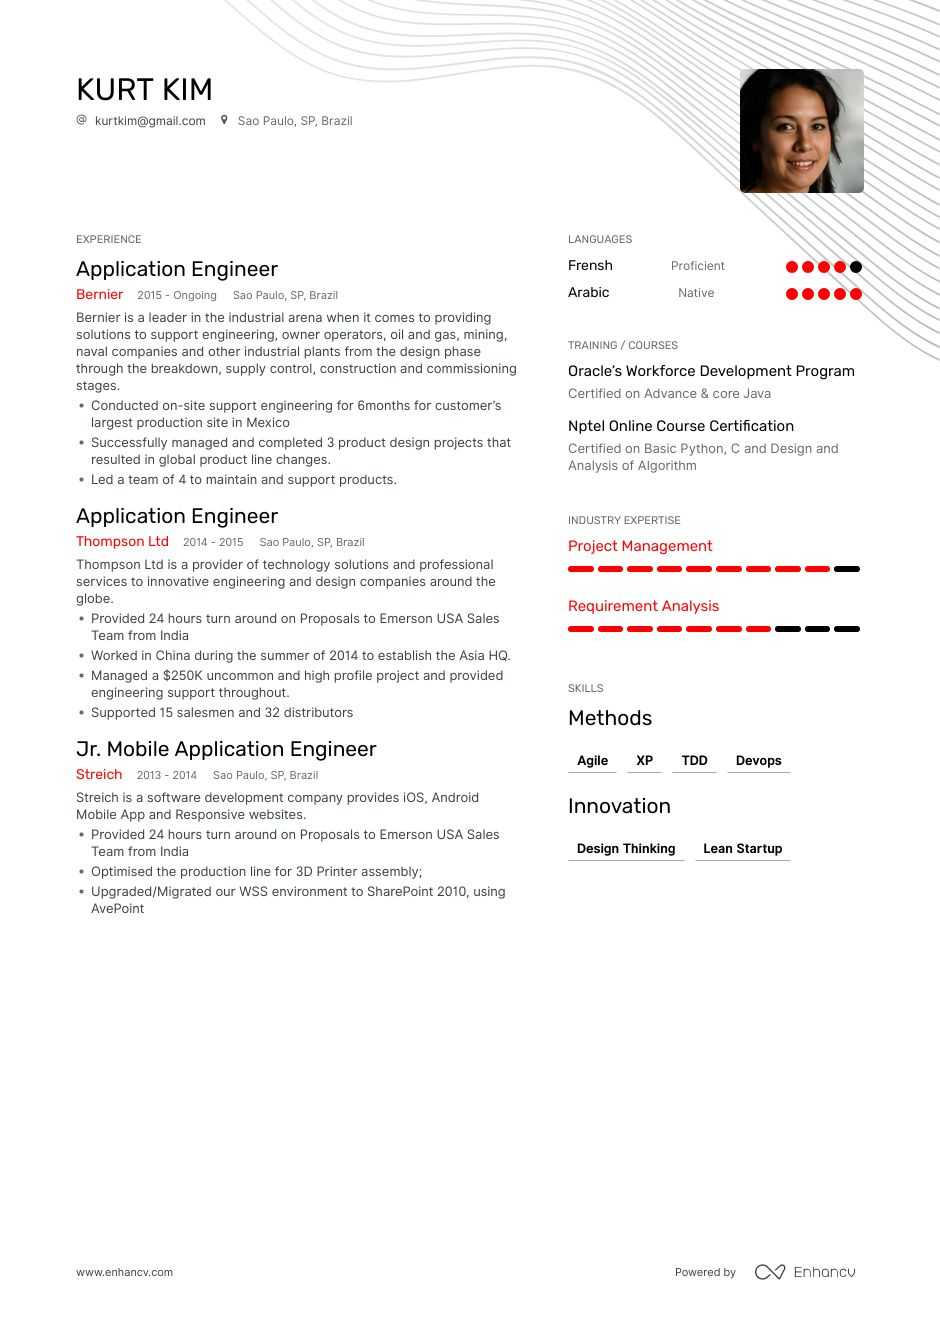 Top Application Engineer Resume Examples Samples For 2020